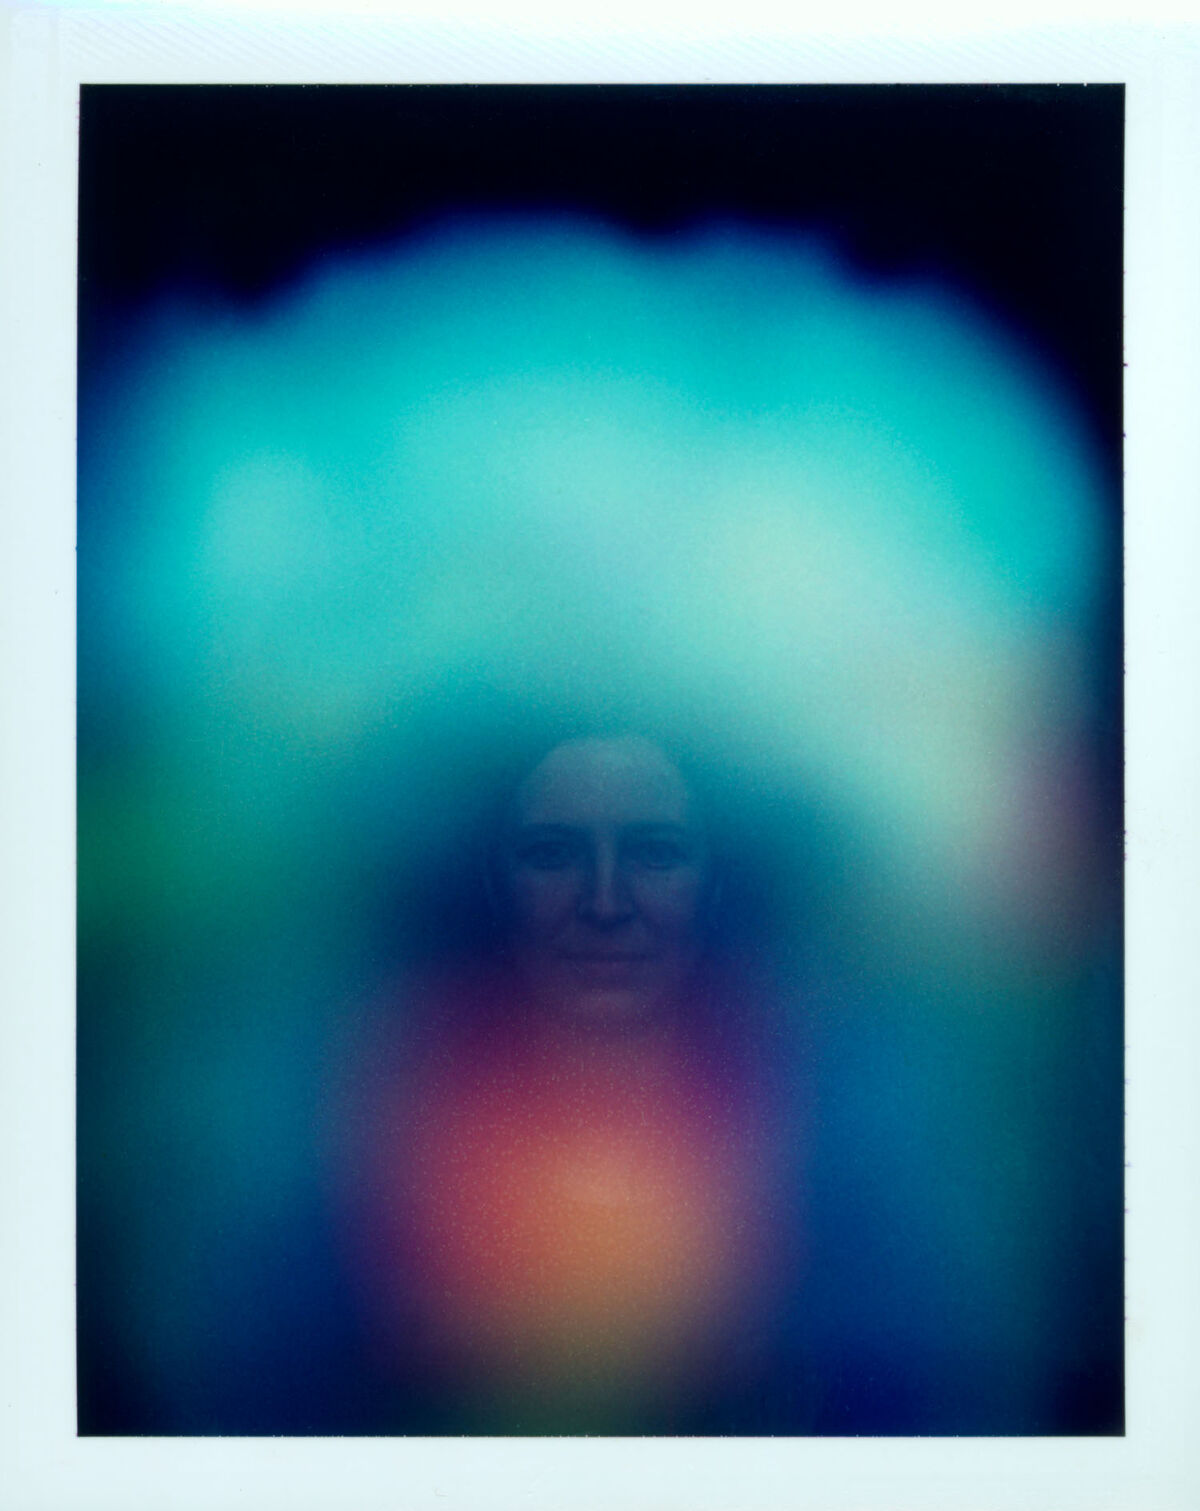 Anne Collier, Untitled Aura Photograph (Tomma Abts), 2002. Courtesy of Creative Time.